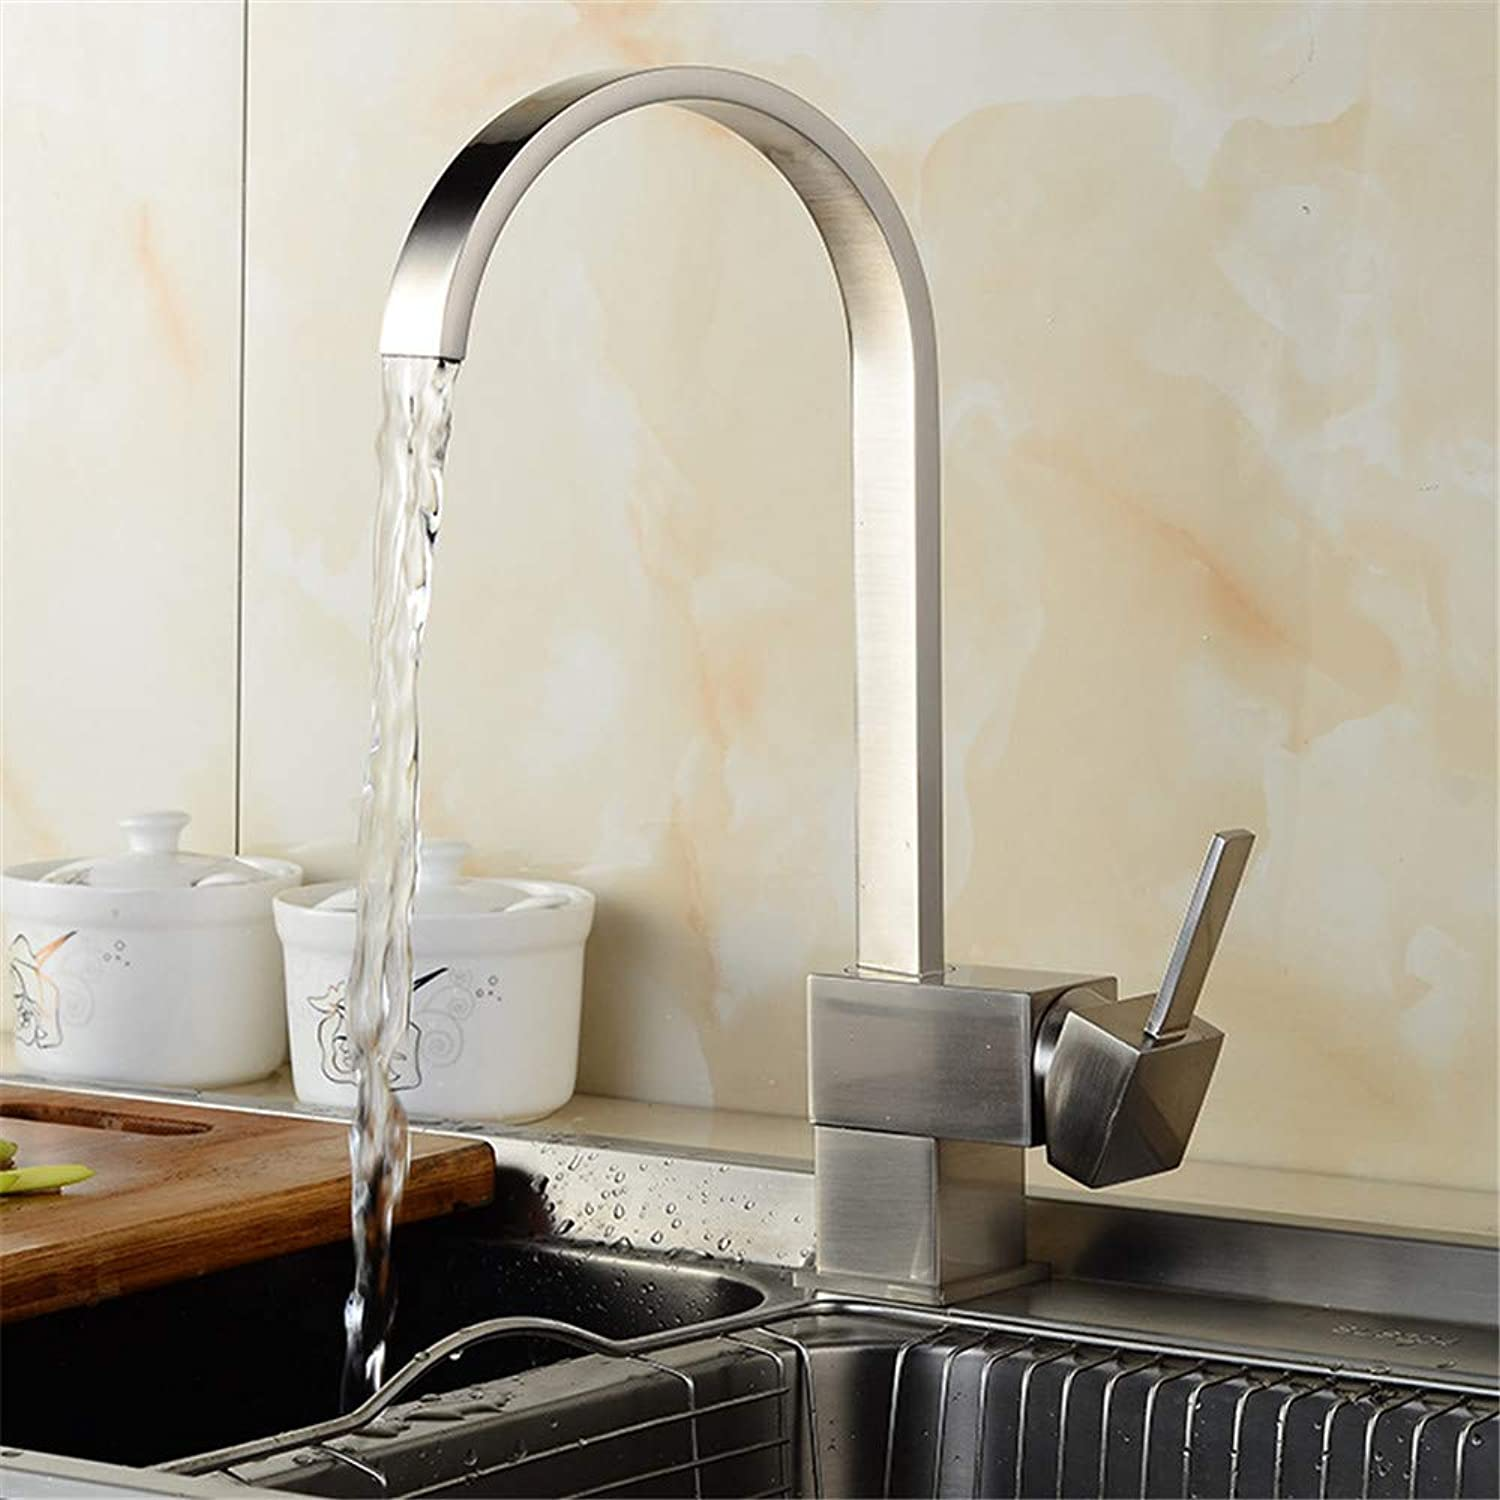 SYW Brass Faucet Kitchen Faucet hot and Cold Water Mixing Thermostat Faucet Kitchen Sink Faucet